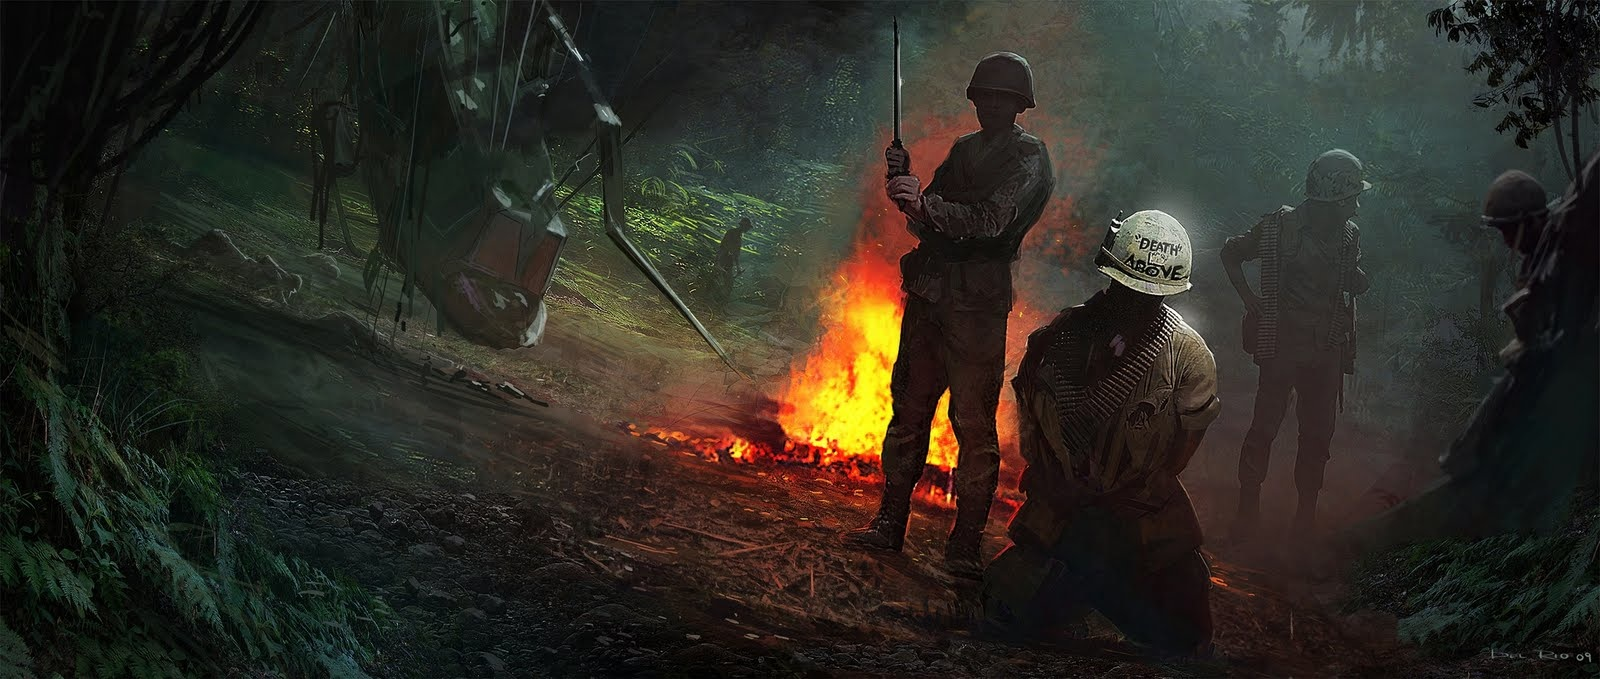 Photo of New Call of Duty game is set in Vietnam according to rumors